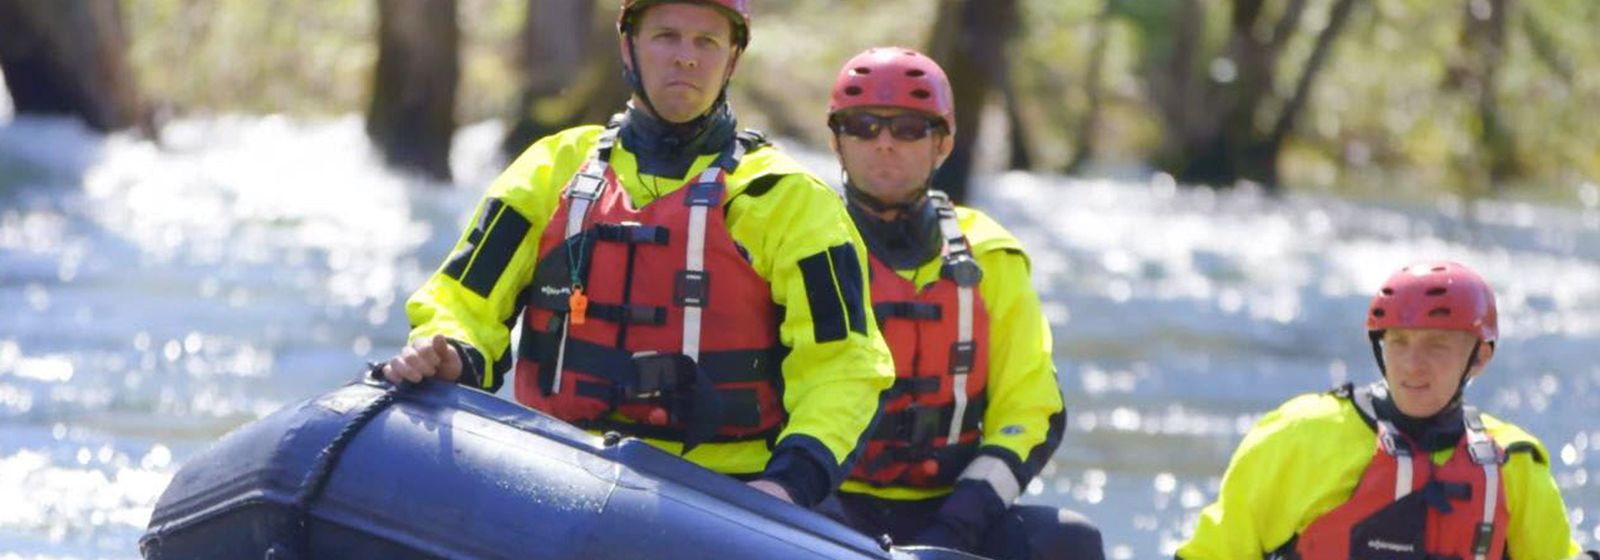 Crews train for rescues on the raging river